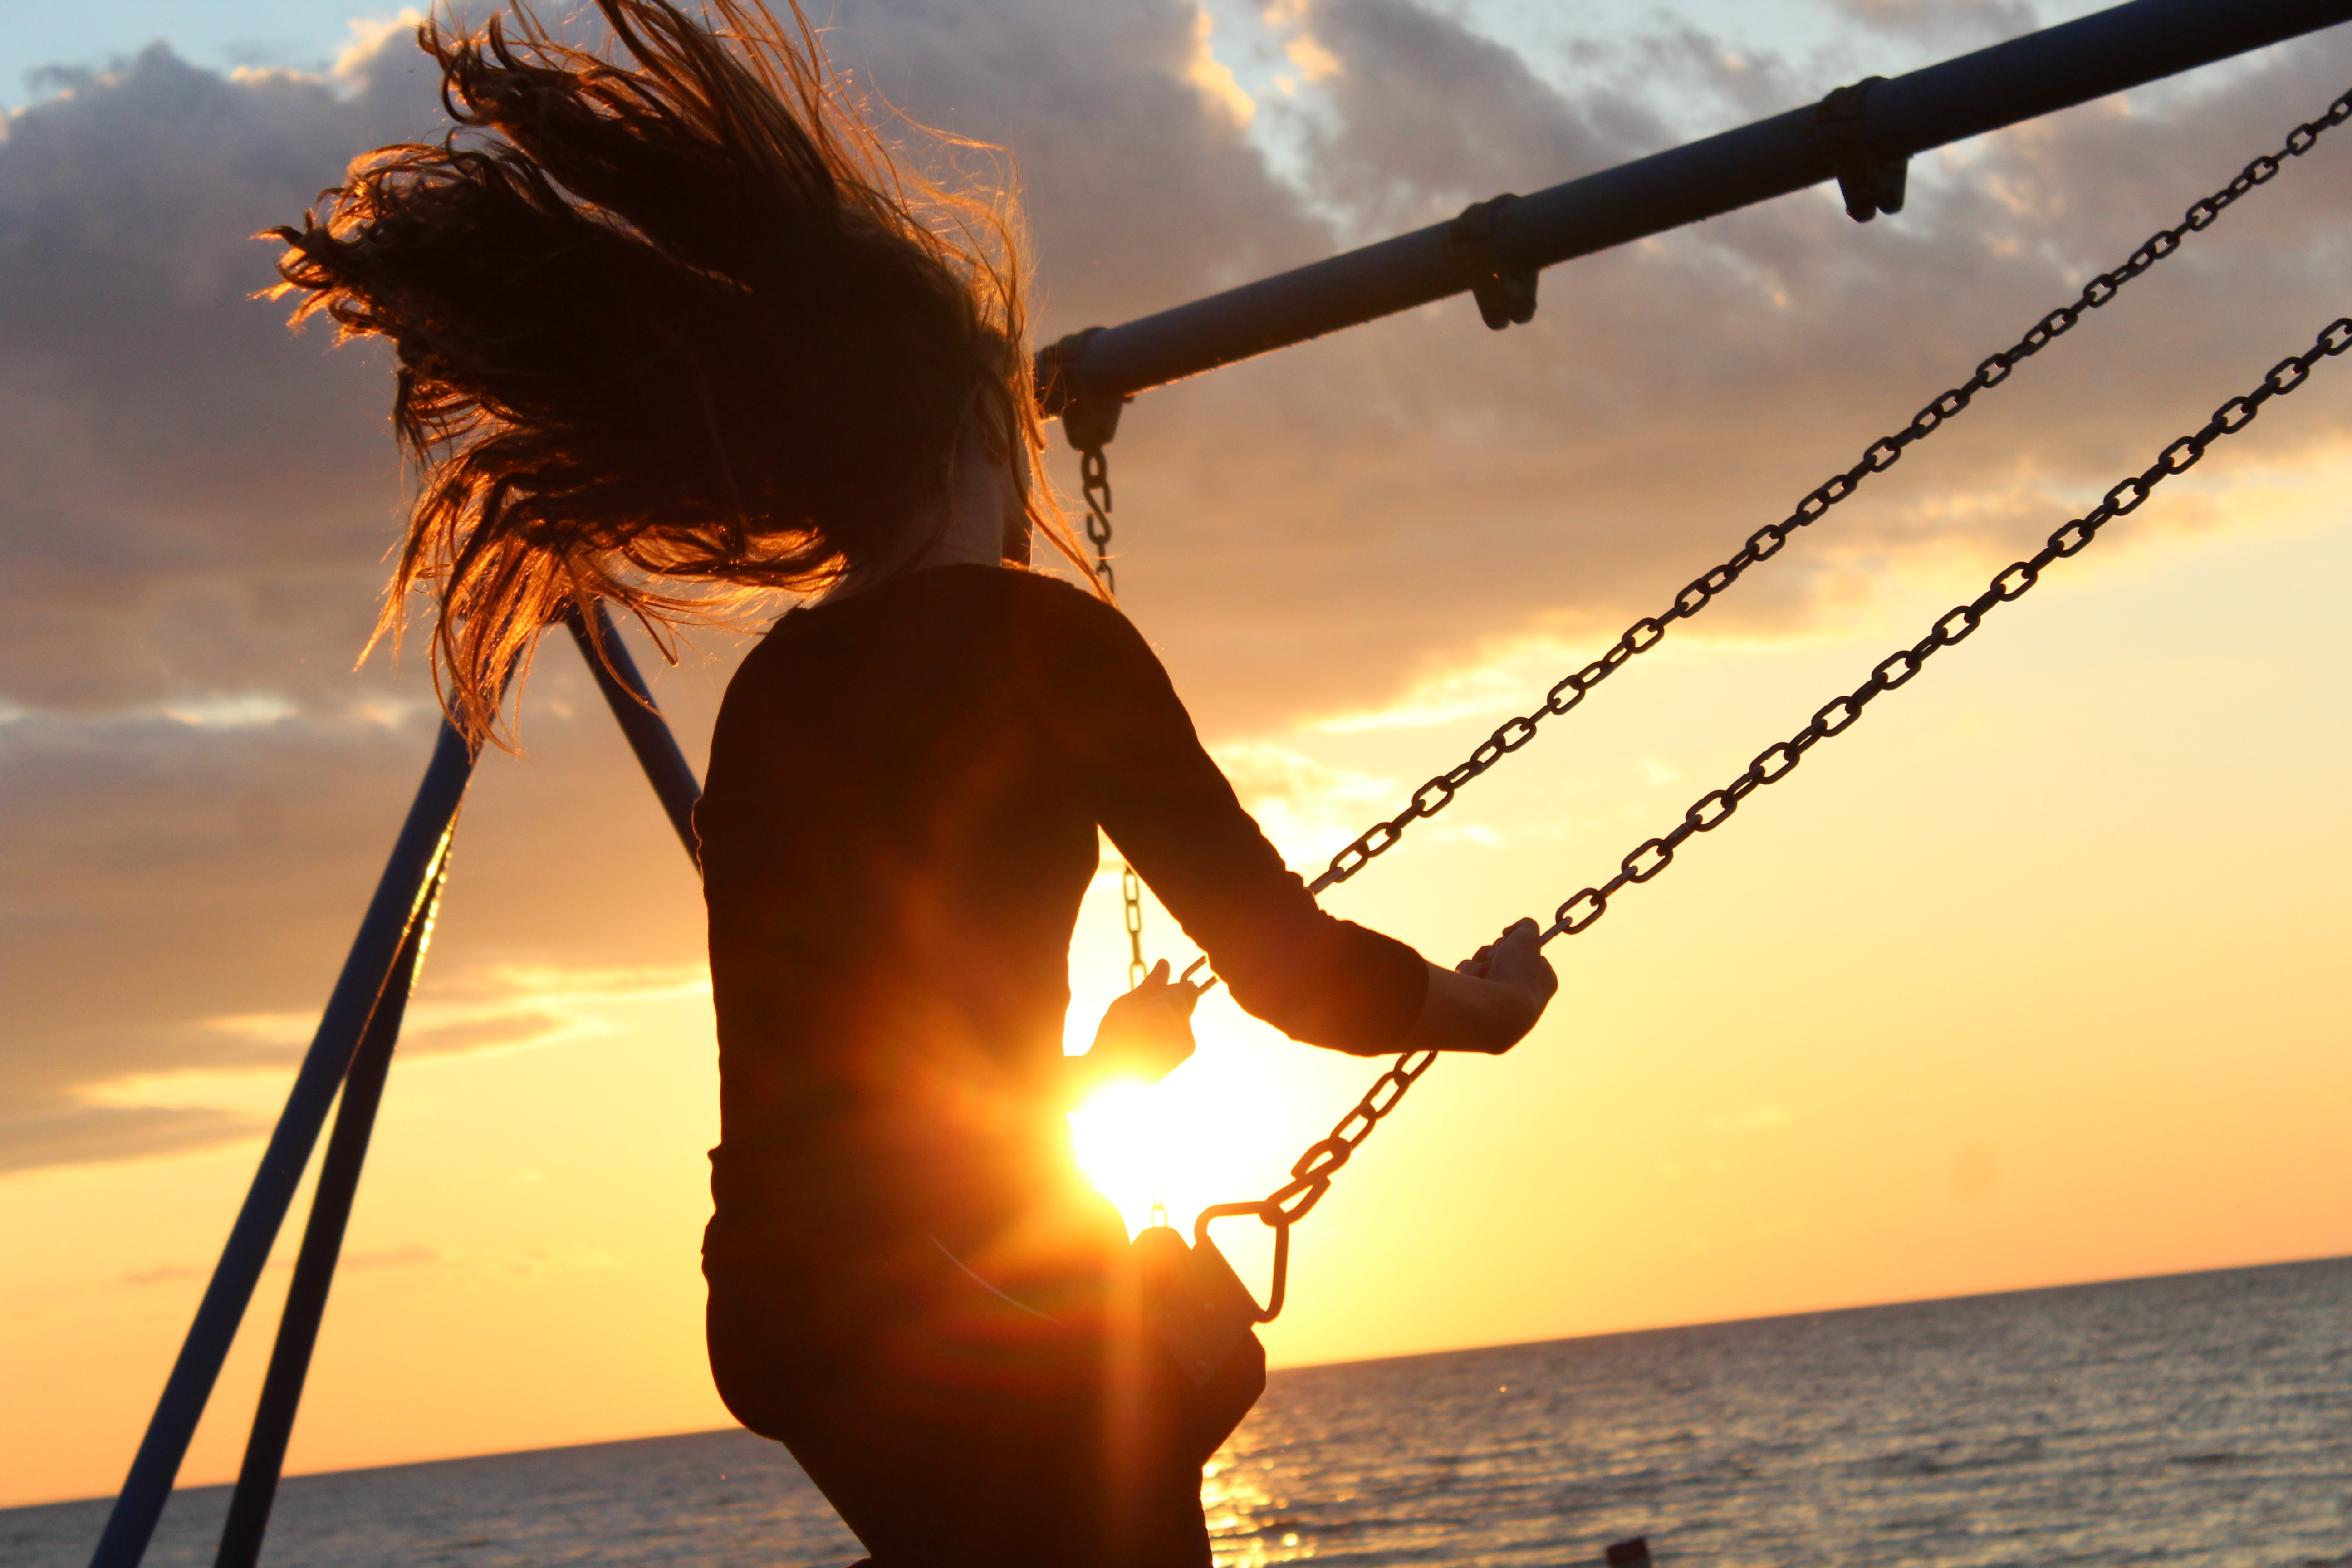 10 Things To Stop Caring About If You Want To Be Happier